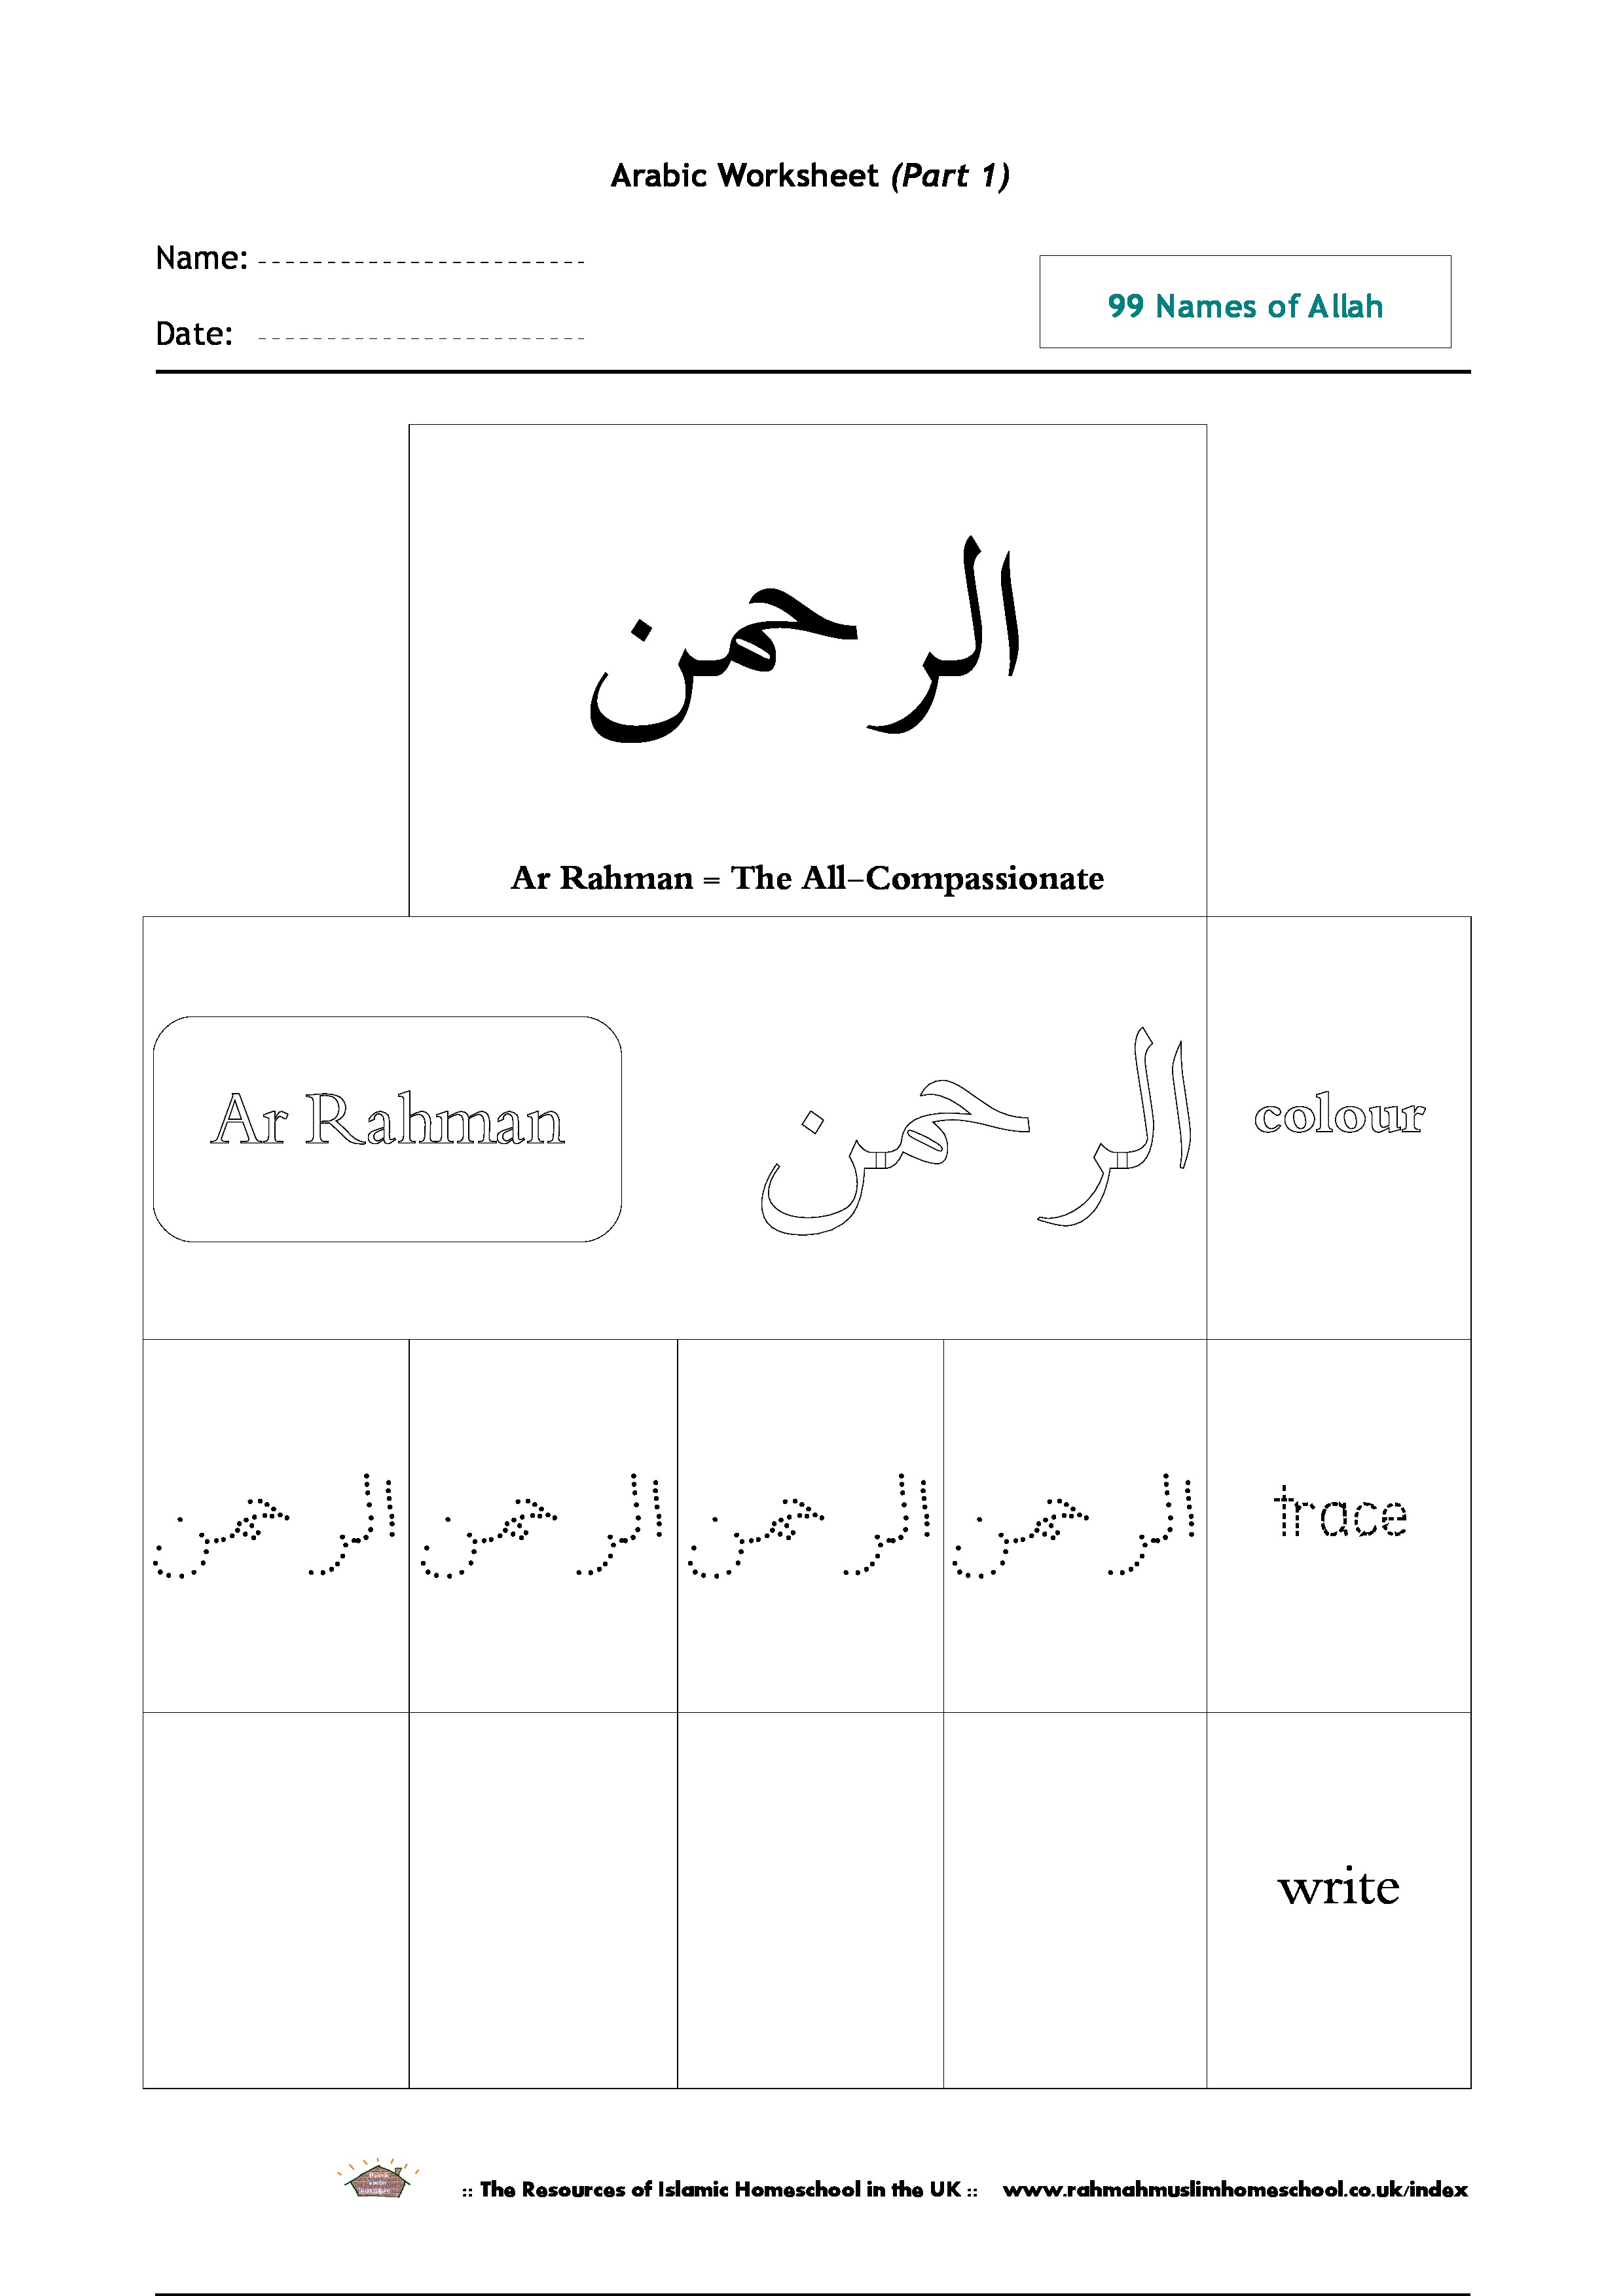 Free Worksheets Part 1 Of The 99 Names Of Allah 9 Pages